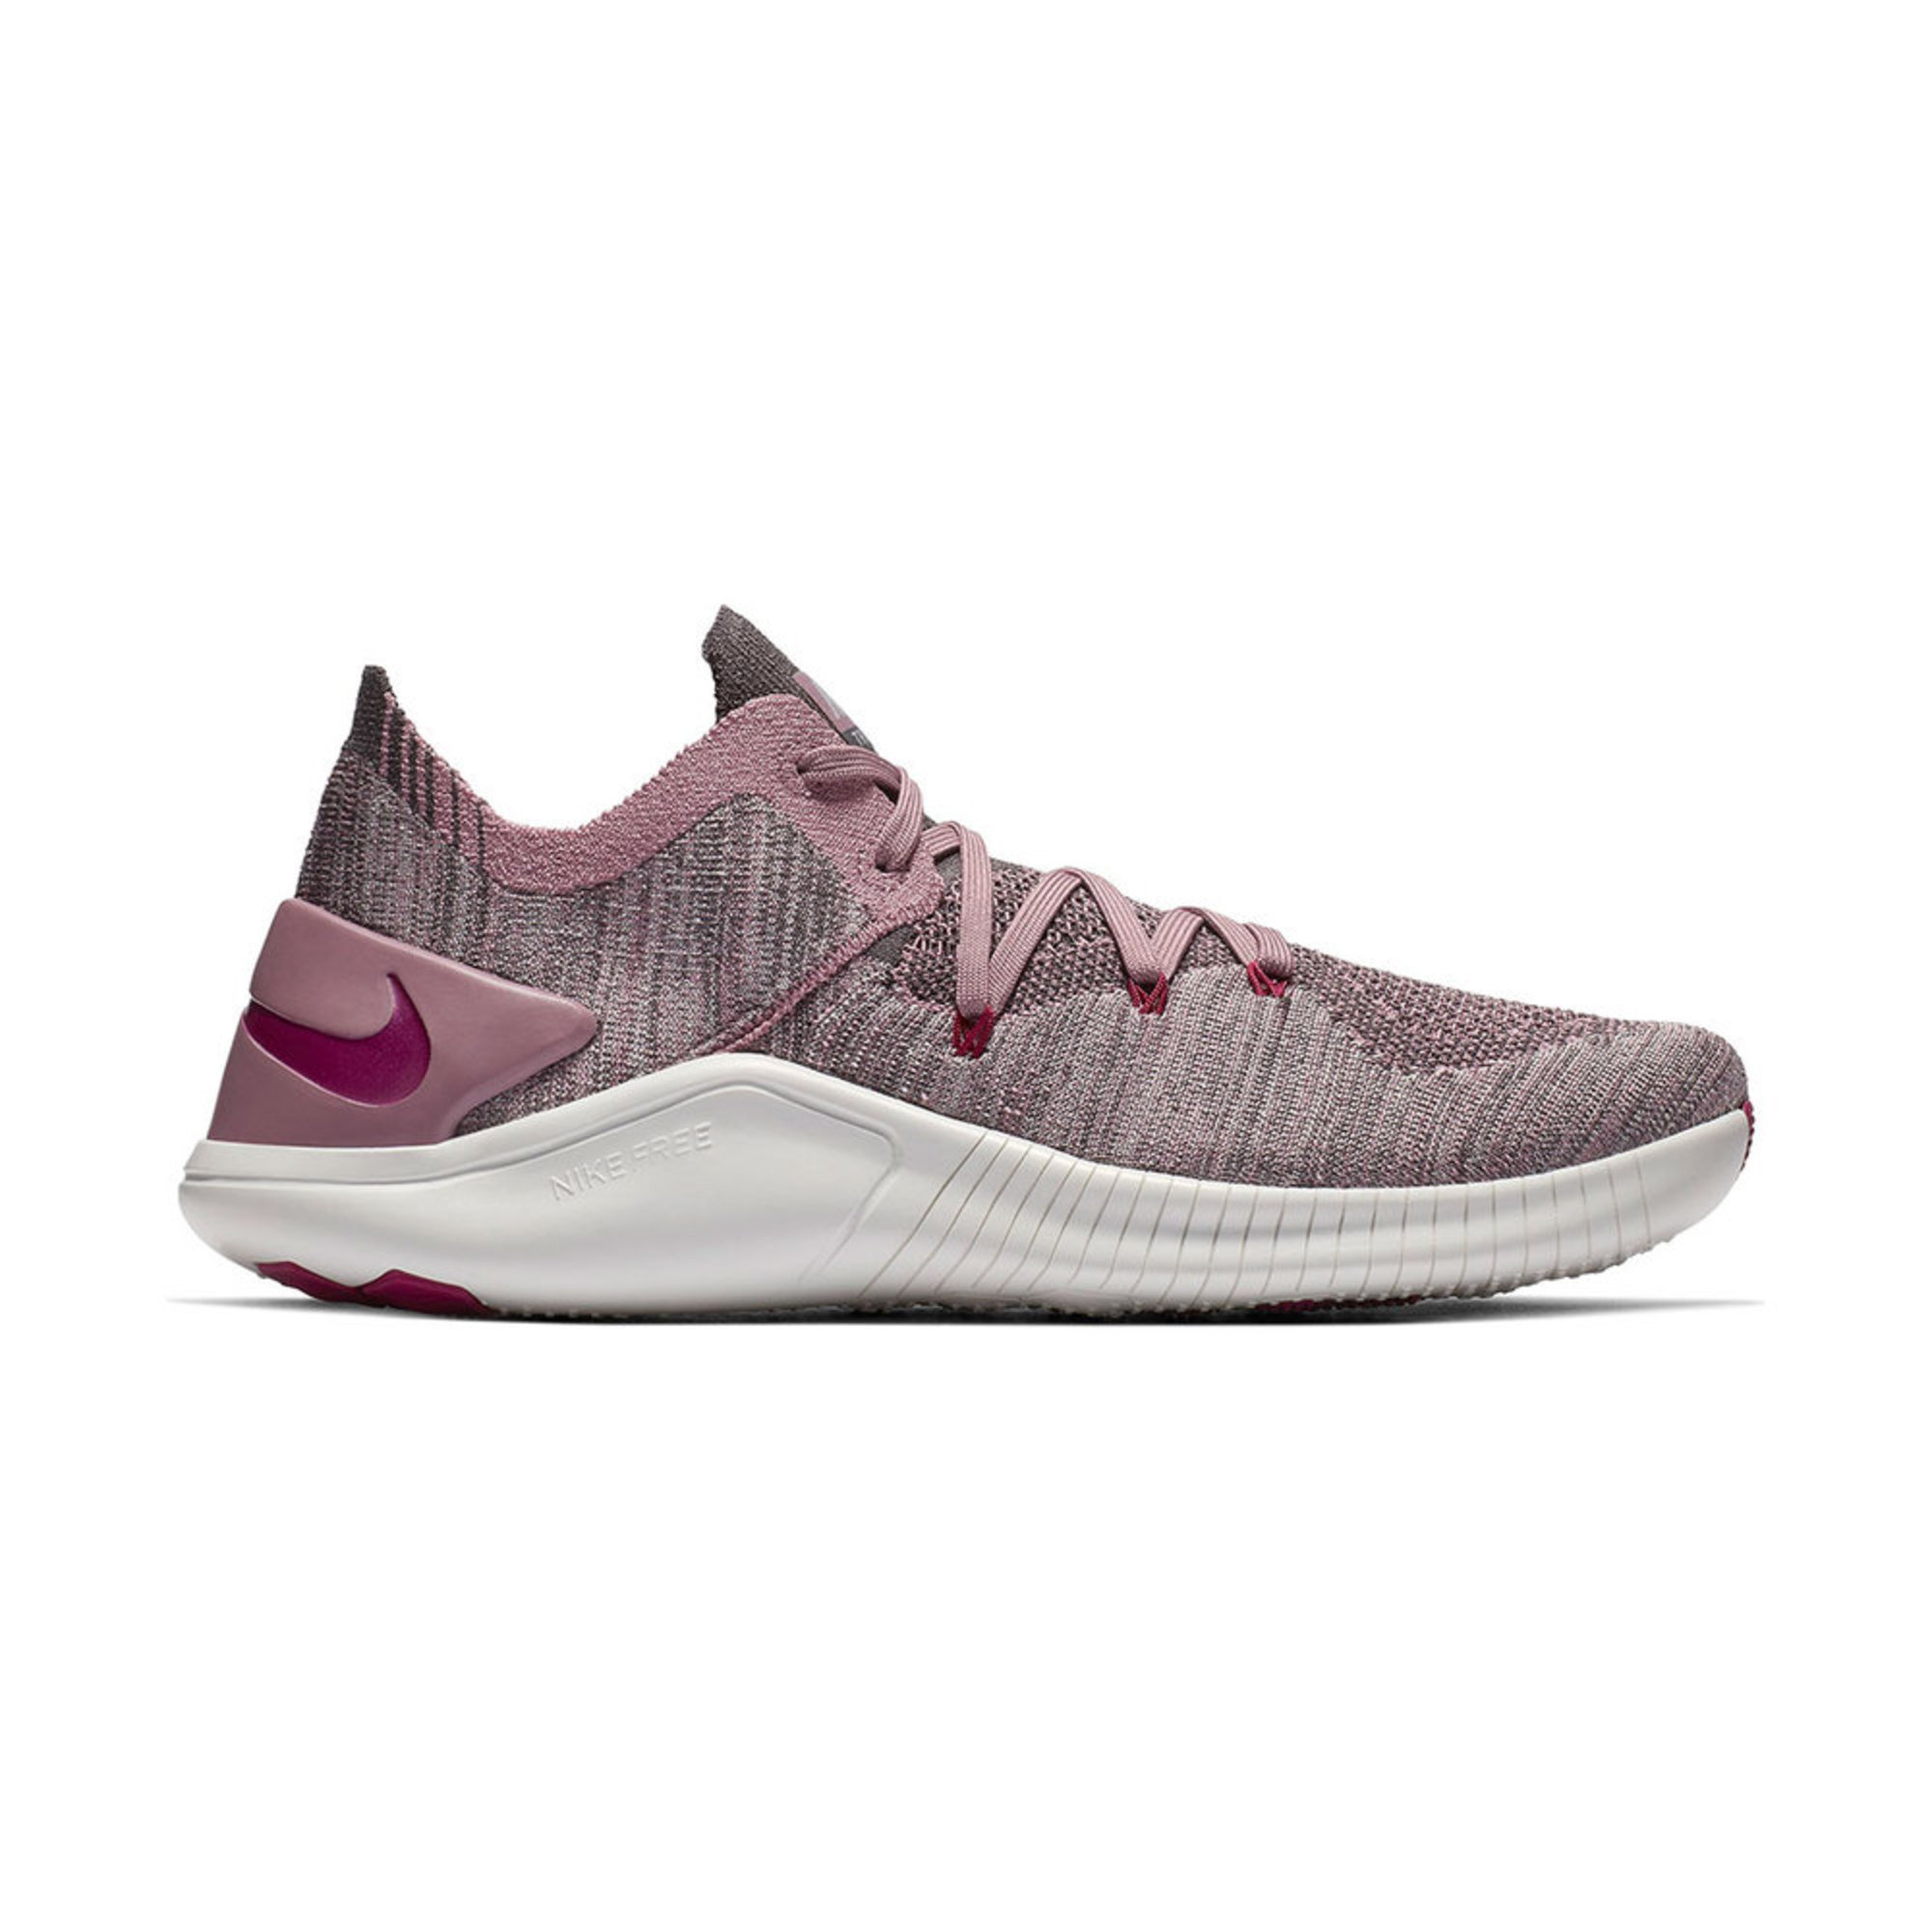 hot sale online 79964 5da6e Nike. Nike Women s Free TR Flyknit 3 Training Shoe